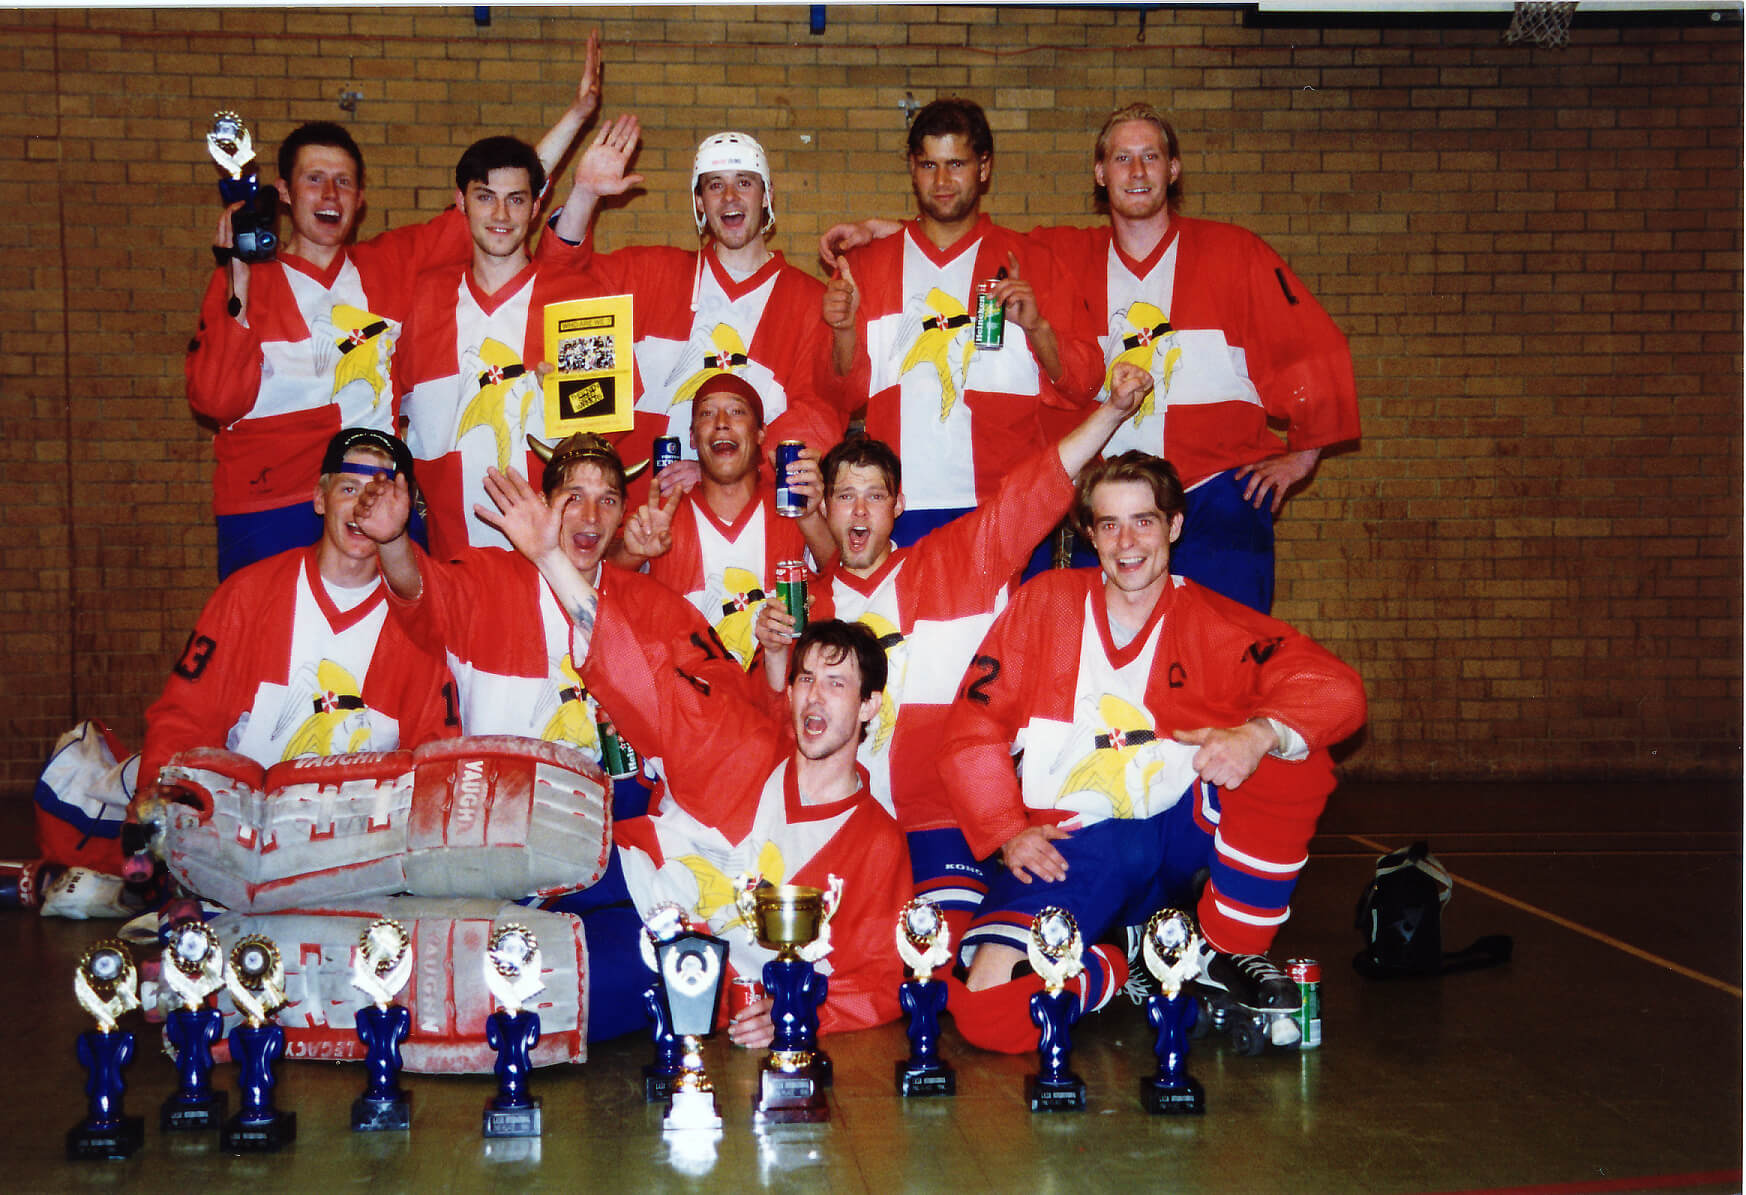 LASH international Tournement 1996